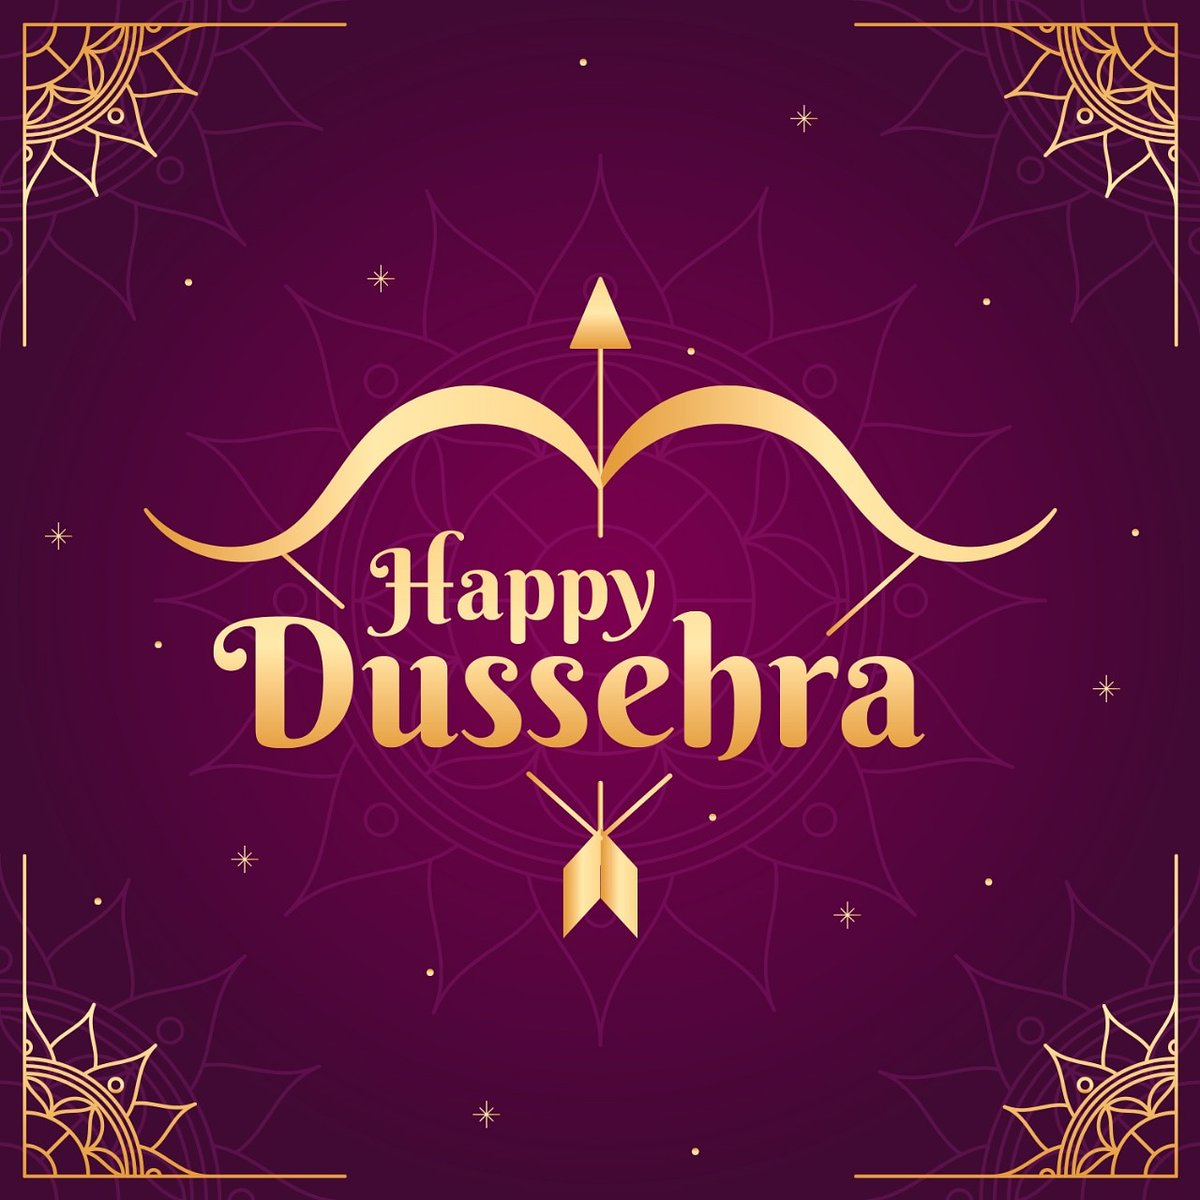 Here's to destroying all evil from our lives! Wishing everyone a #HappyDusshera